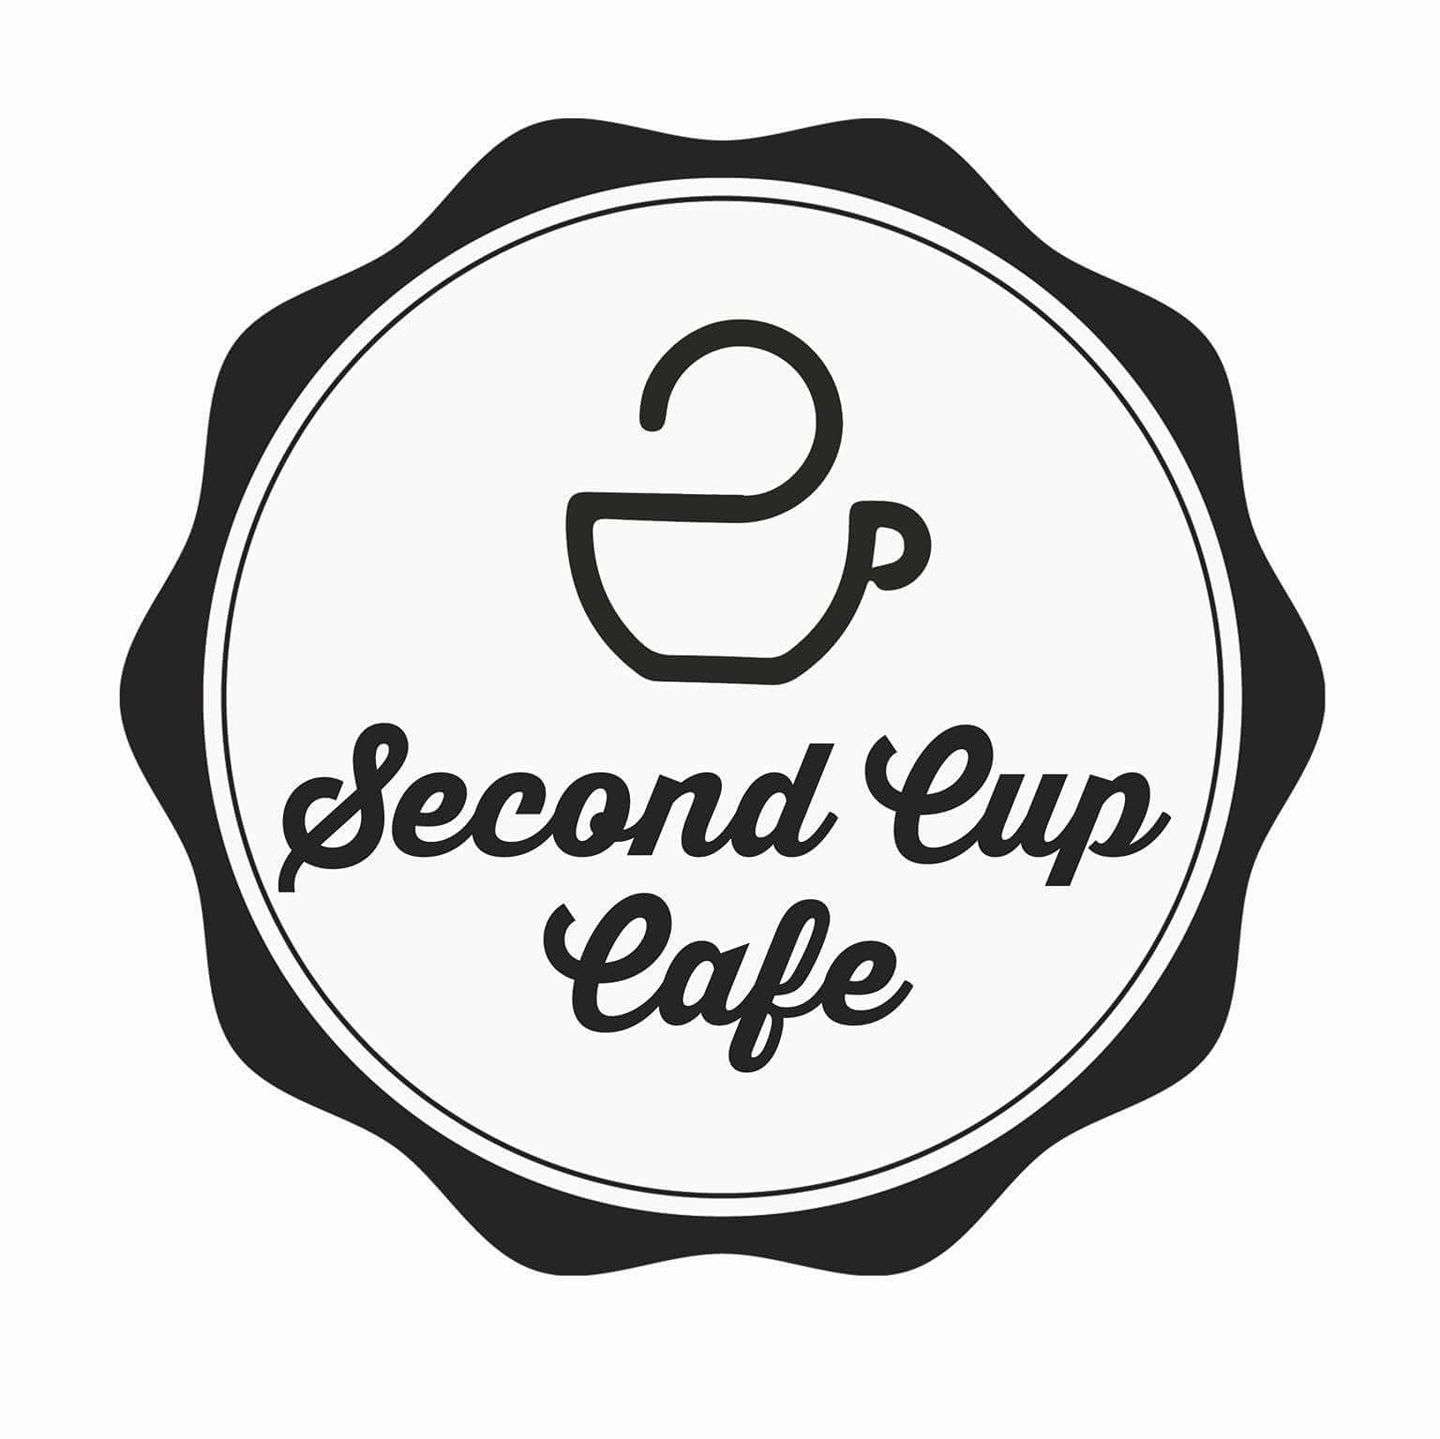 Second Cup Cafe Logo